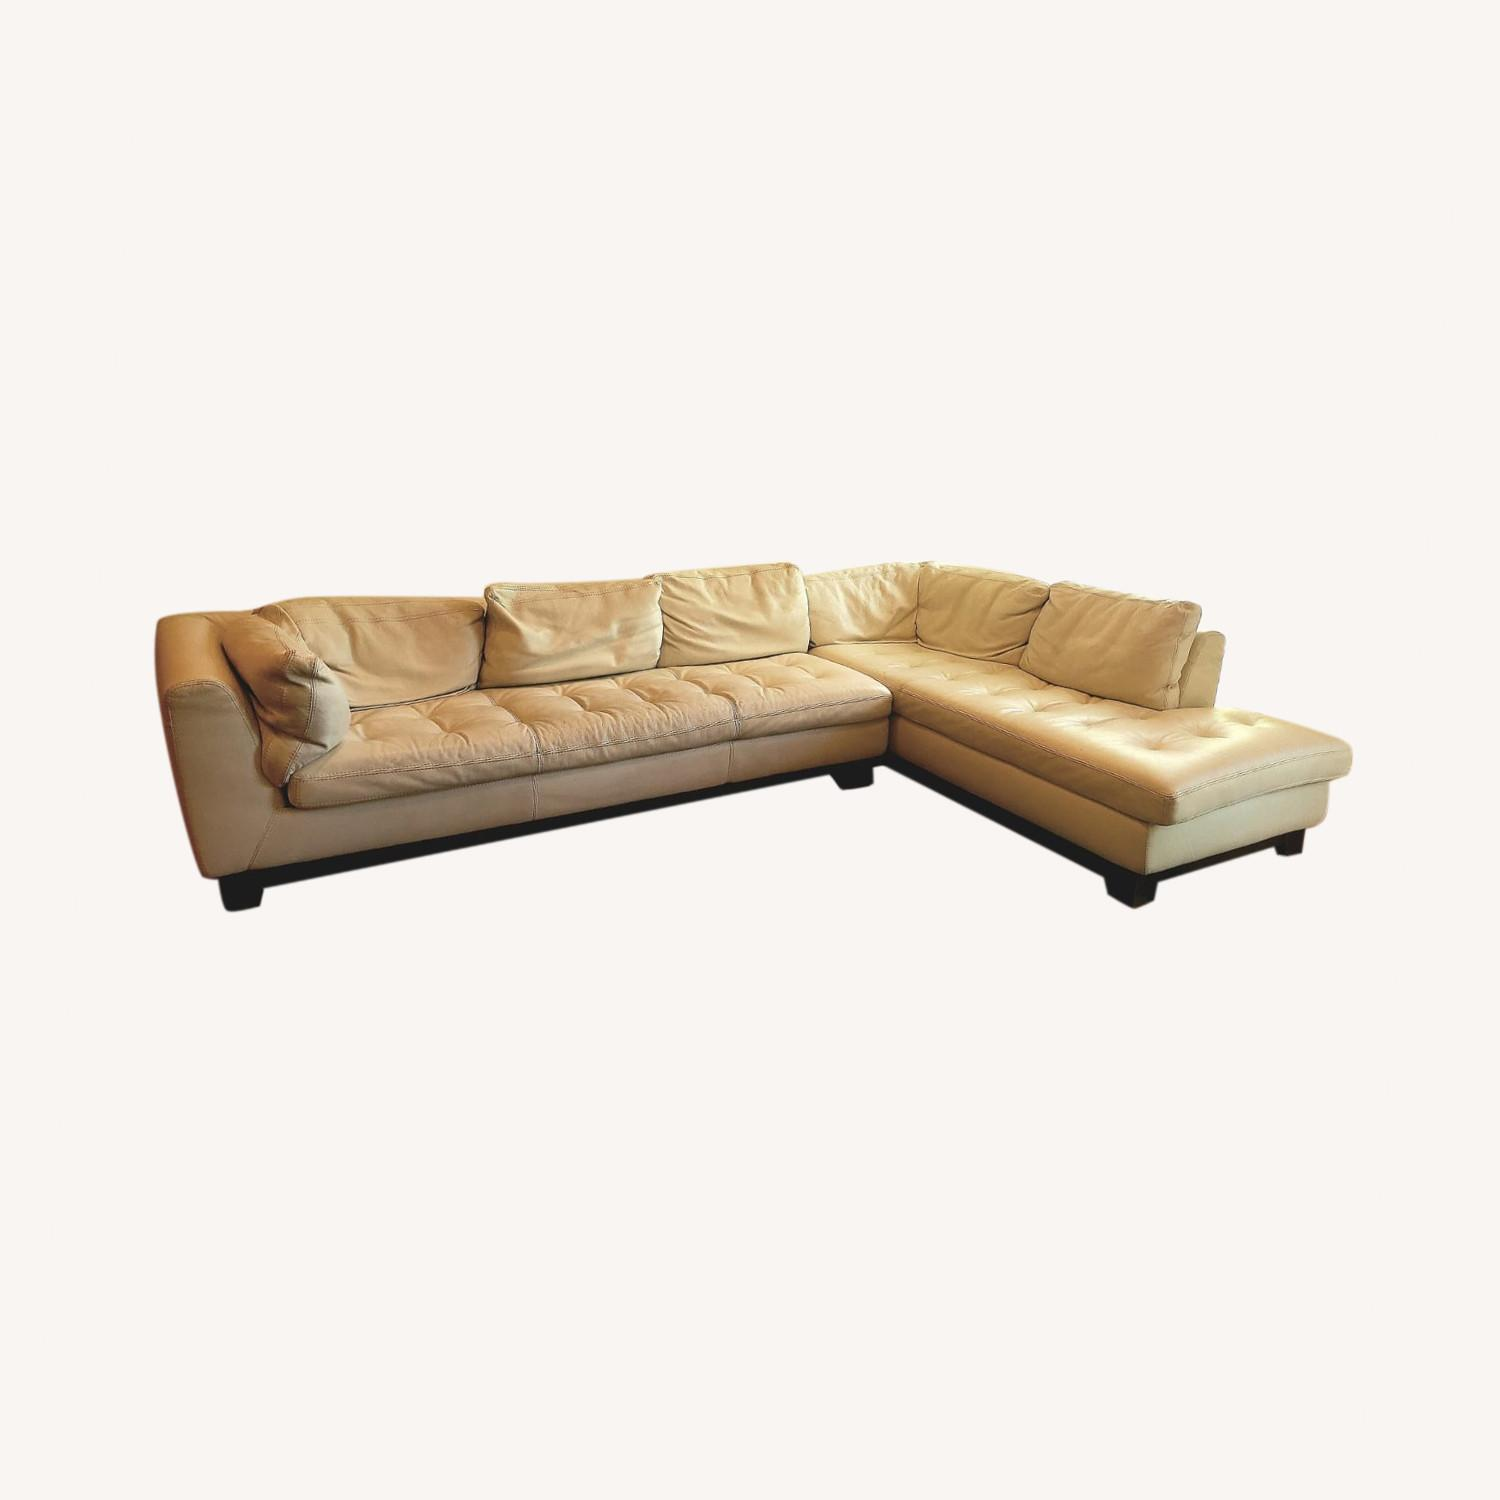 Roche Bobois Leather Sectional Sofa - image-0